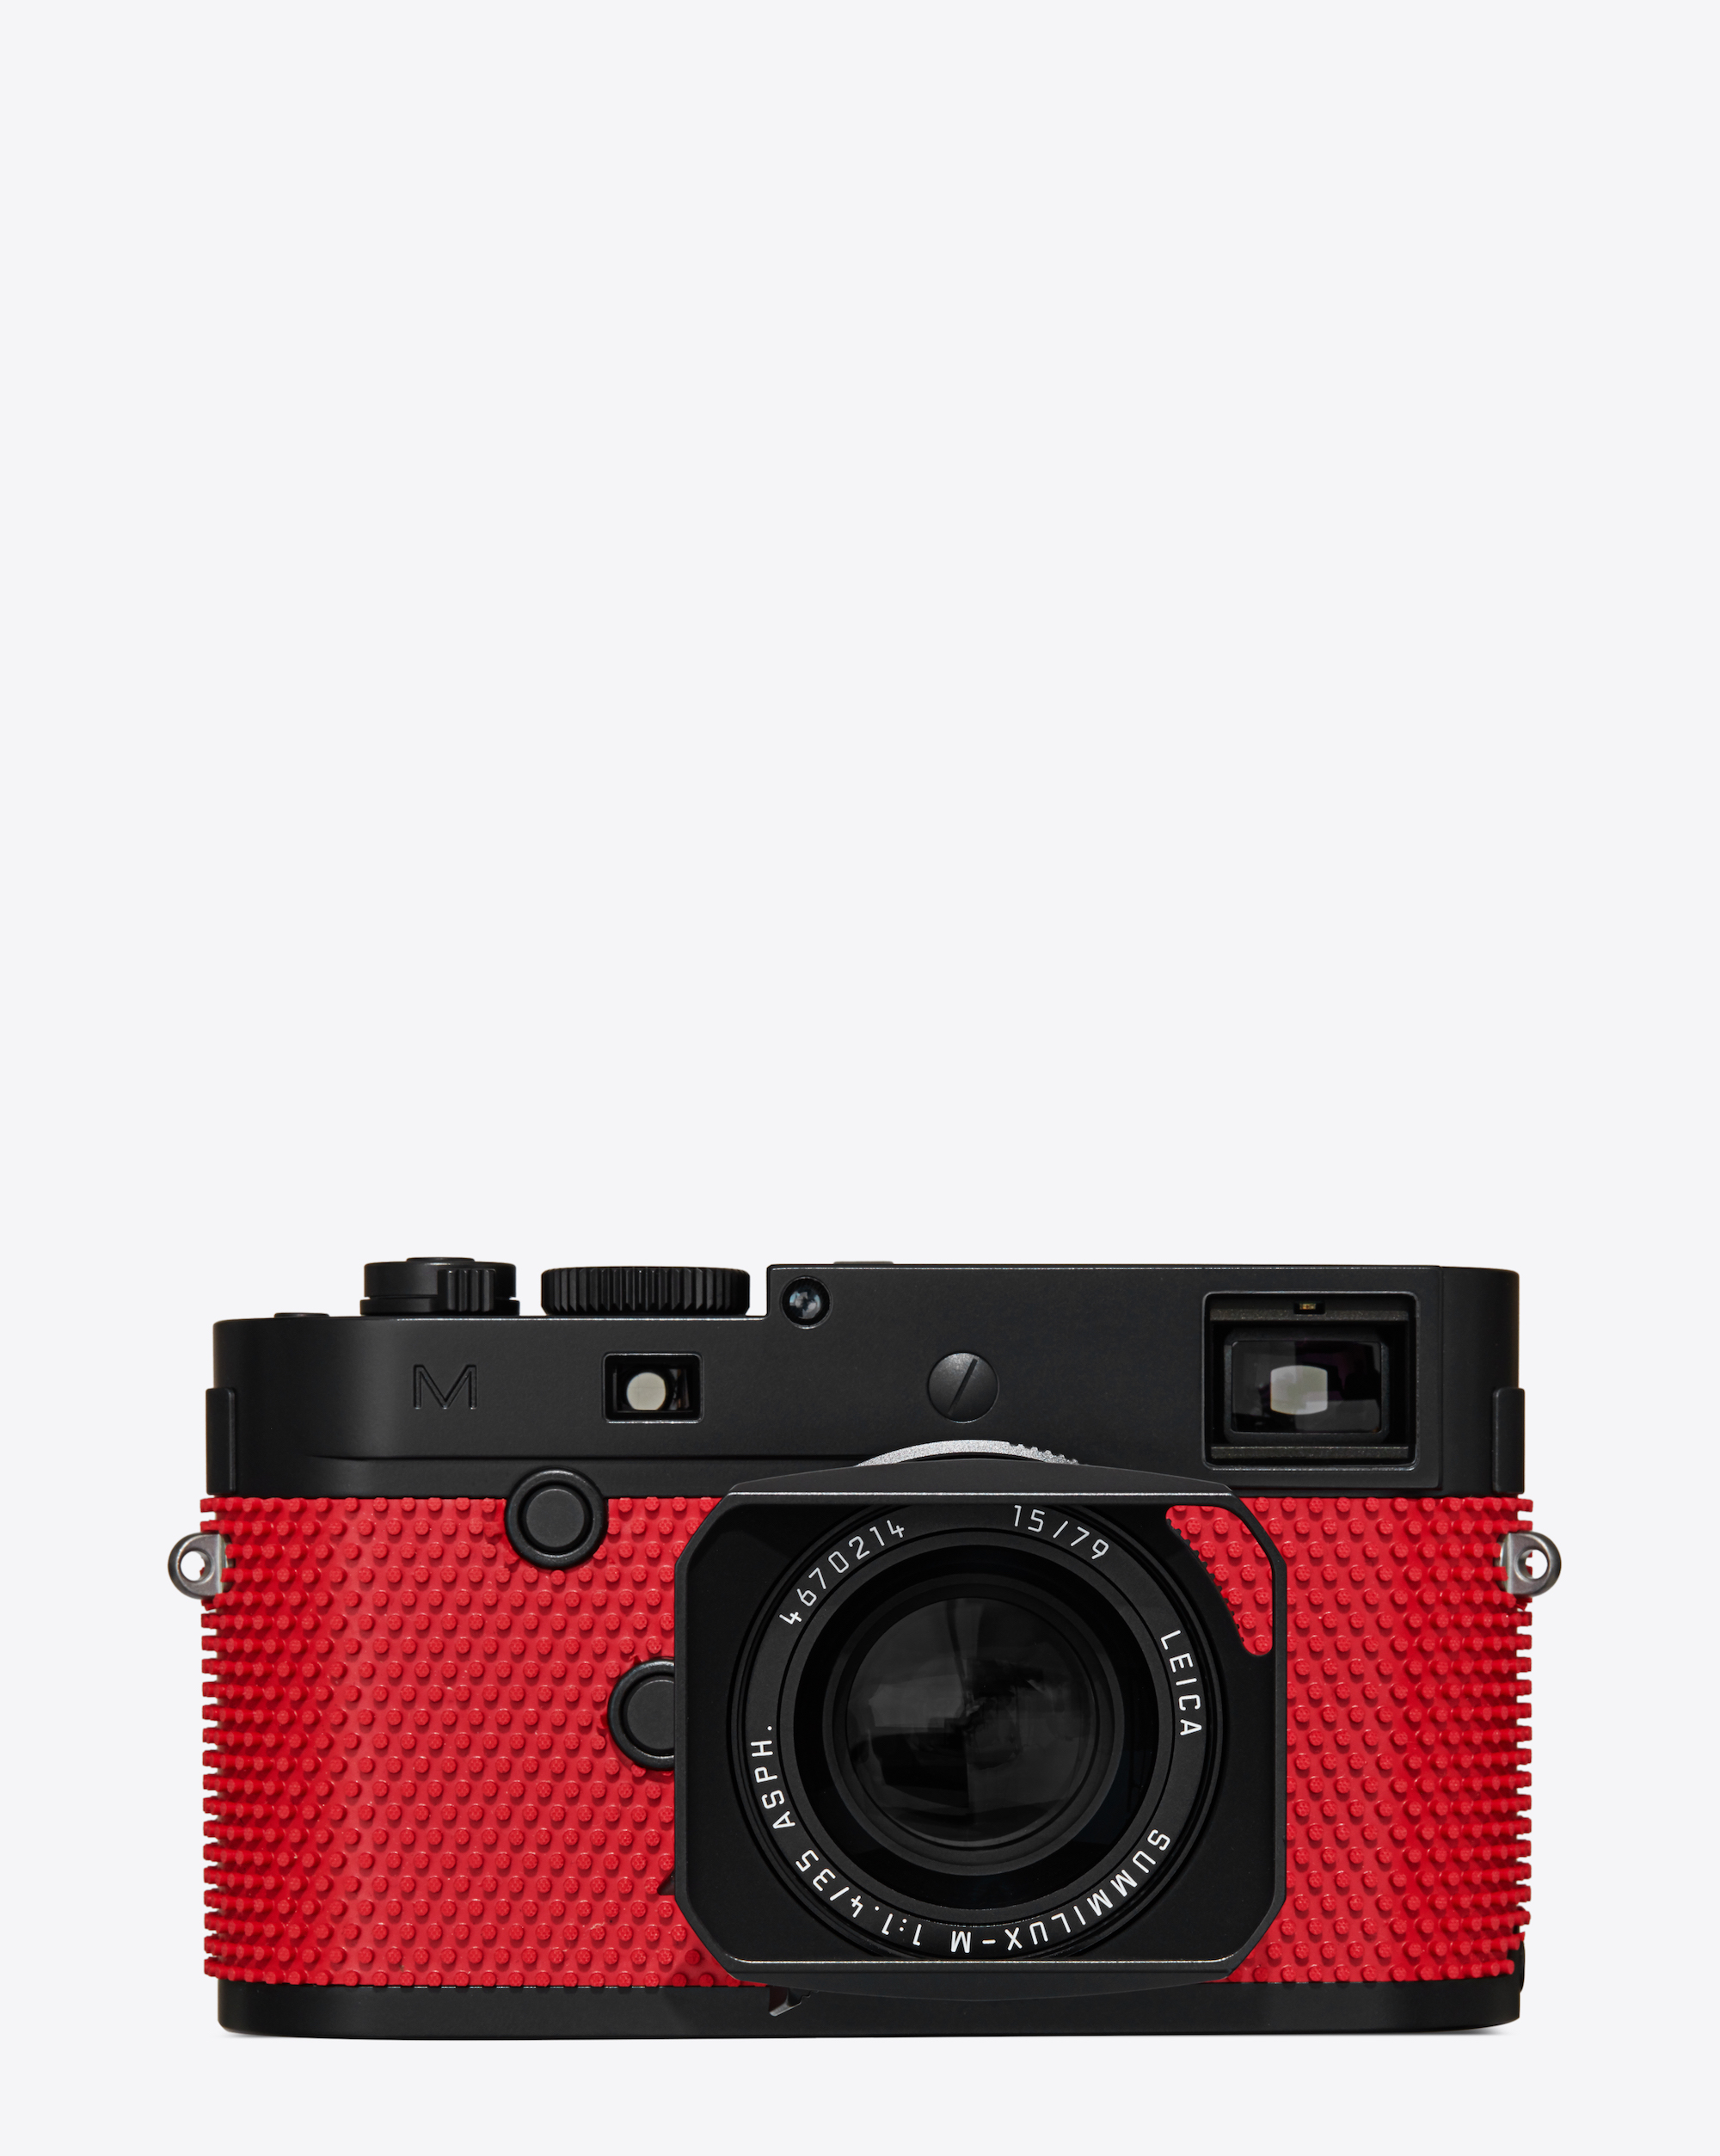 Wonderland Saint Laurent Rive Droite collaboration Leica cameras